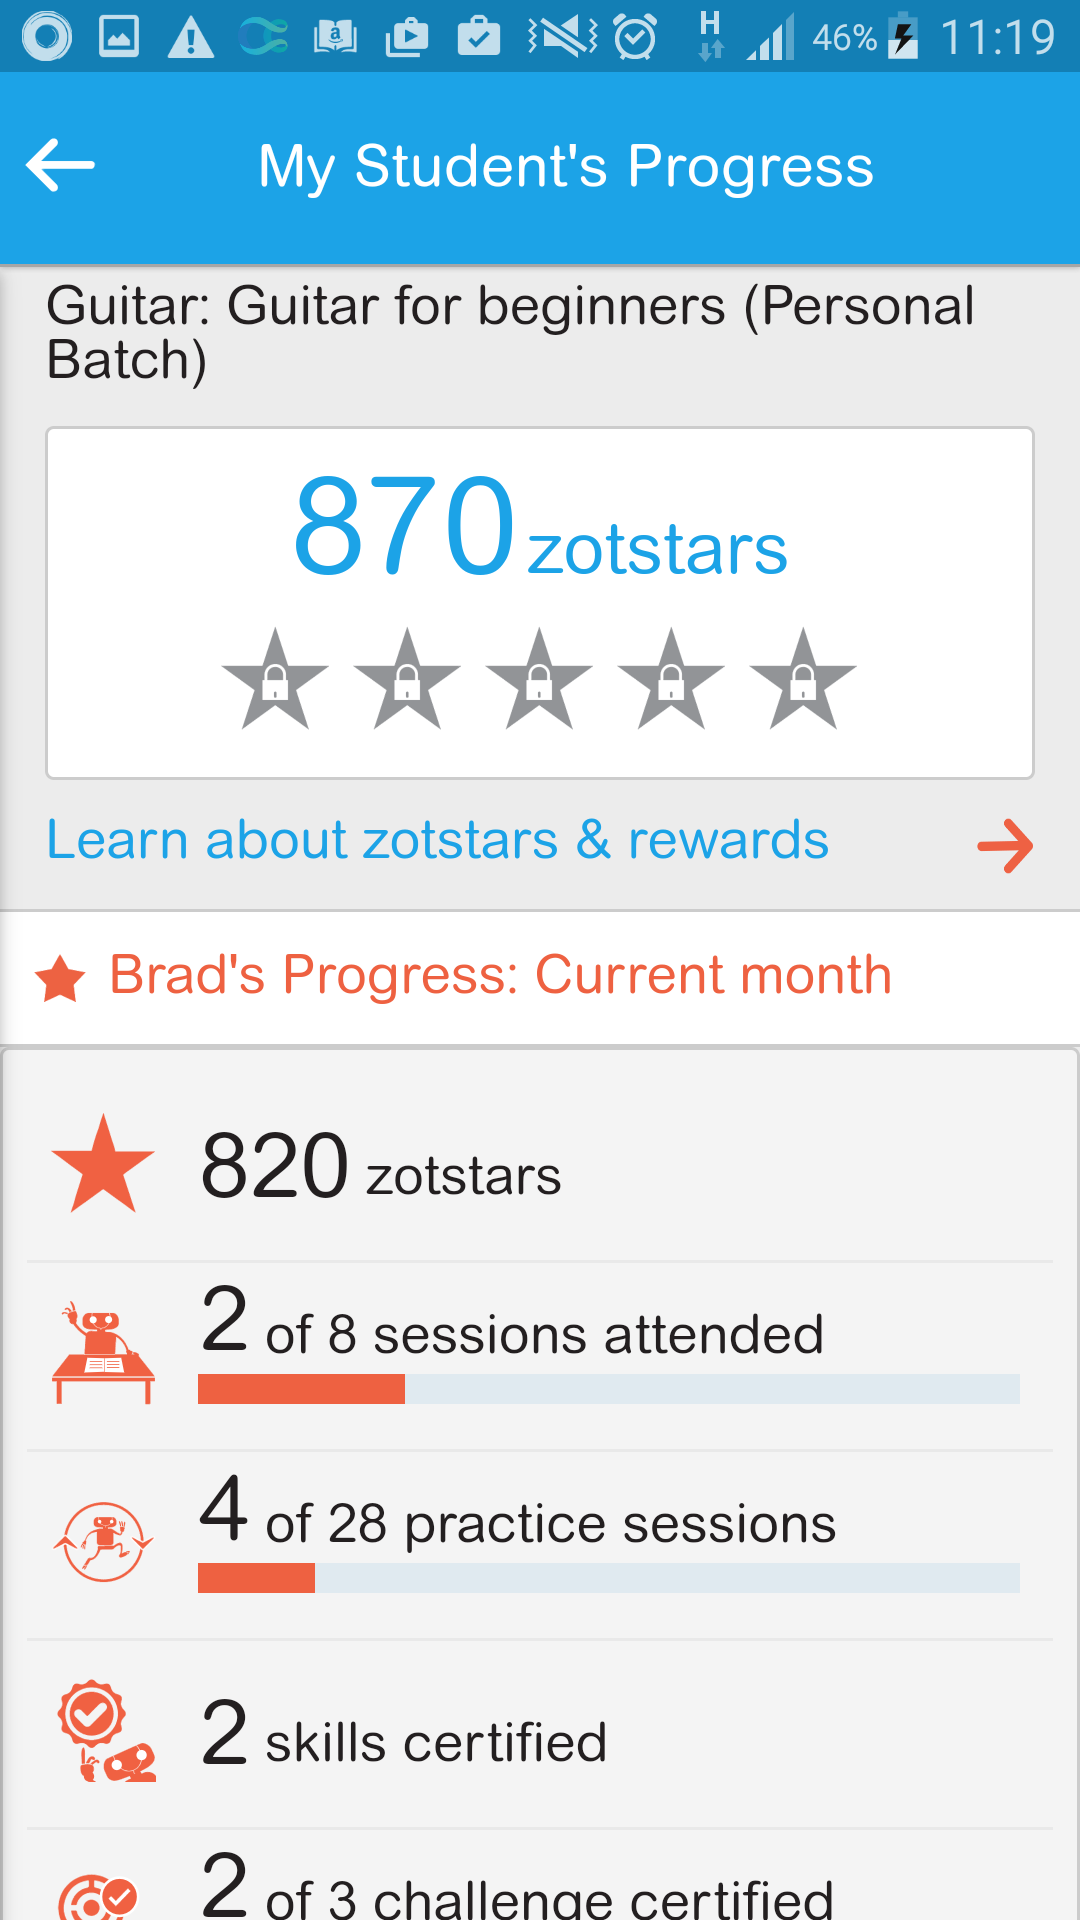 Skillzot_Mobile_App_Teacher_Progress